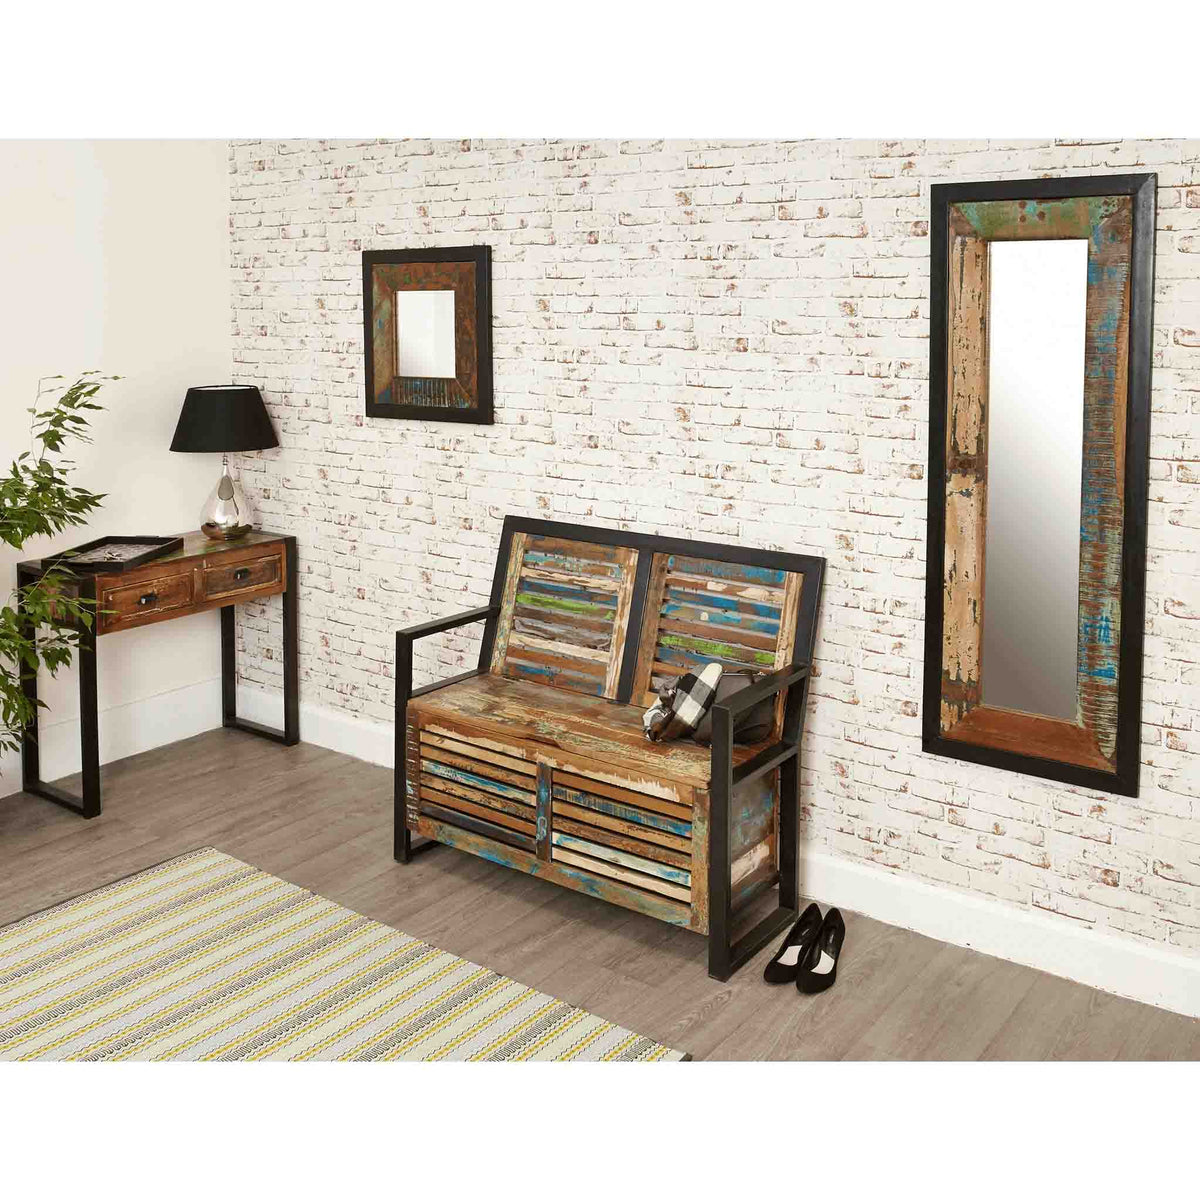 Lifestyle image with The Urban Chic Industrial Reclaimed Wood Long Mirror